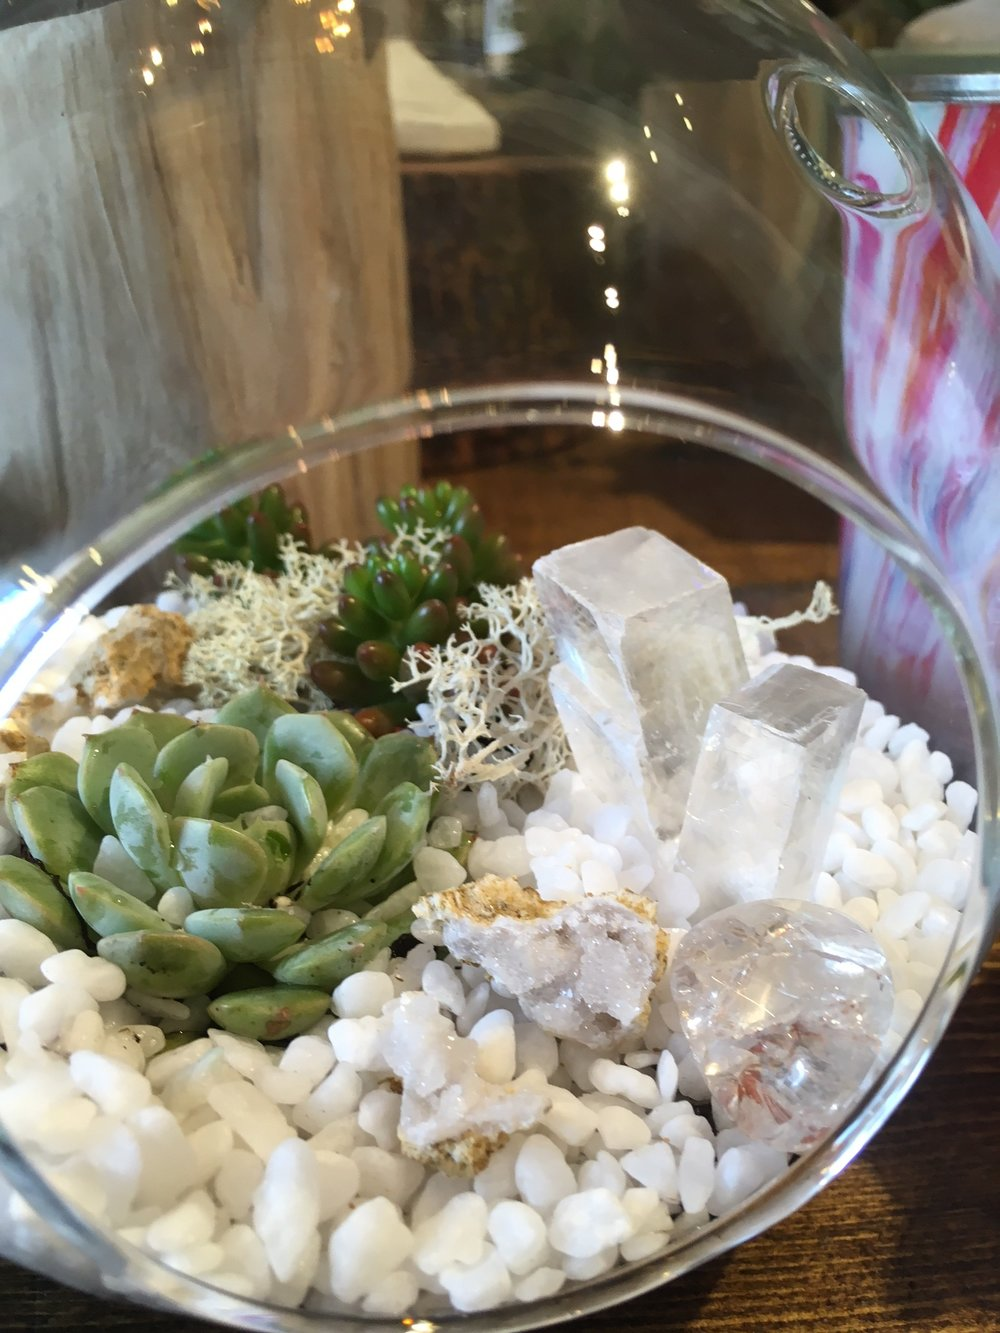 You're a Gem - Starting at $25. This succulent planter features real crystals and geodes, great for a in class teaching moment!